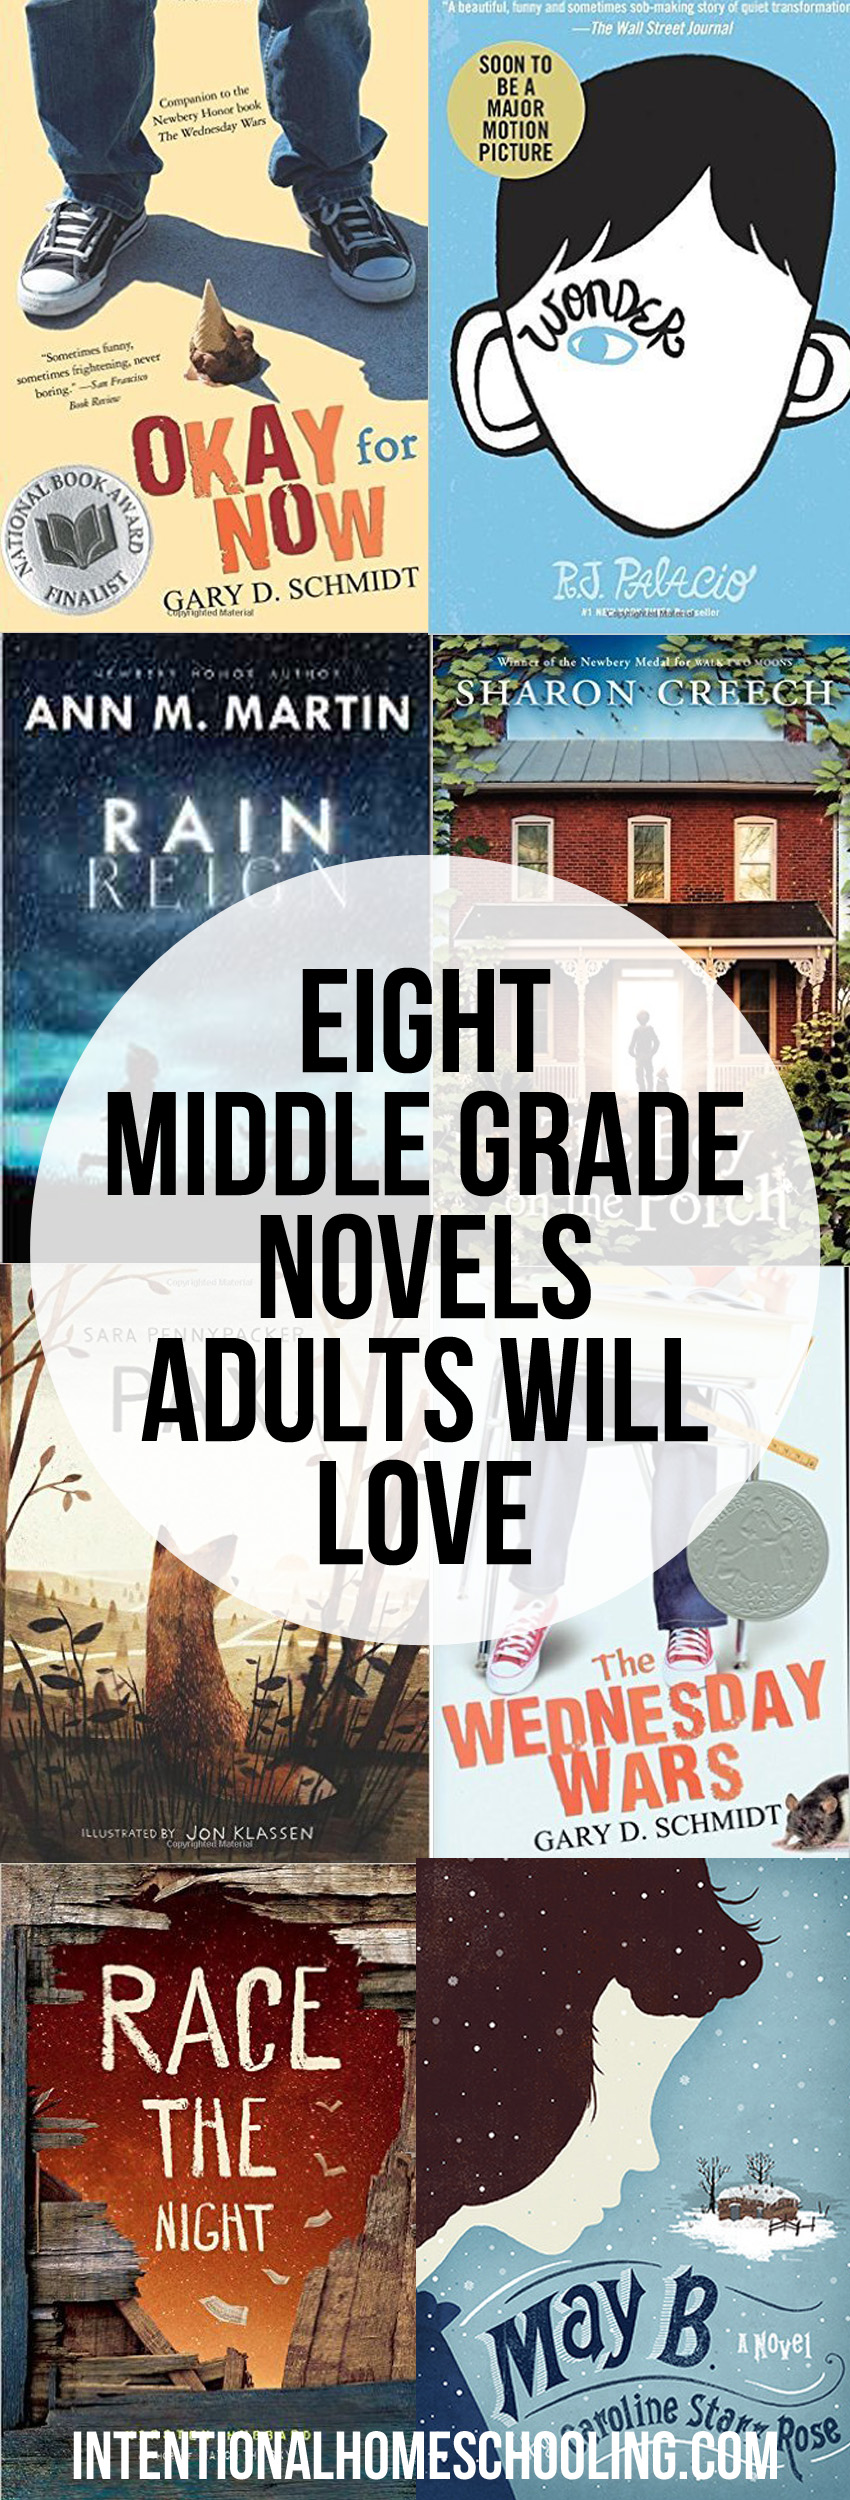 Middle Grade Novels Even Adults Will Love